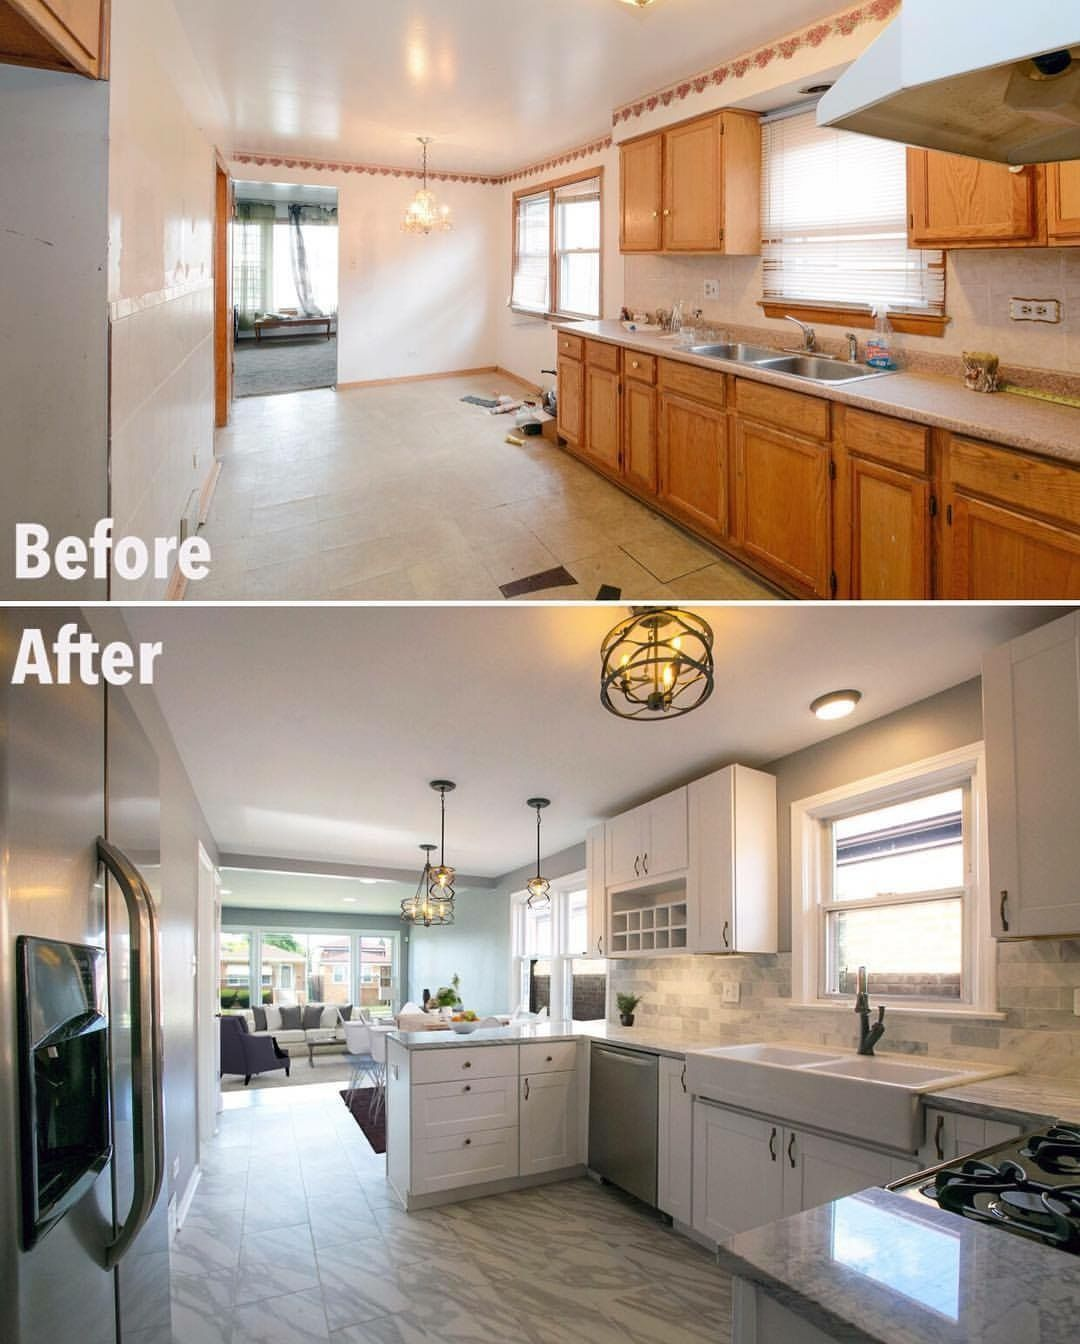 New Kitchen Makeover Ideas Diykitchenmakeover Kitchen Remodel Cost Kitchen Remodel Small Kitchen Remodeling Projects